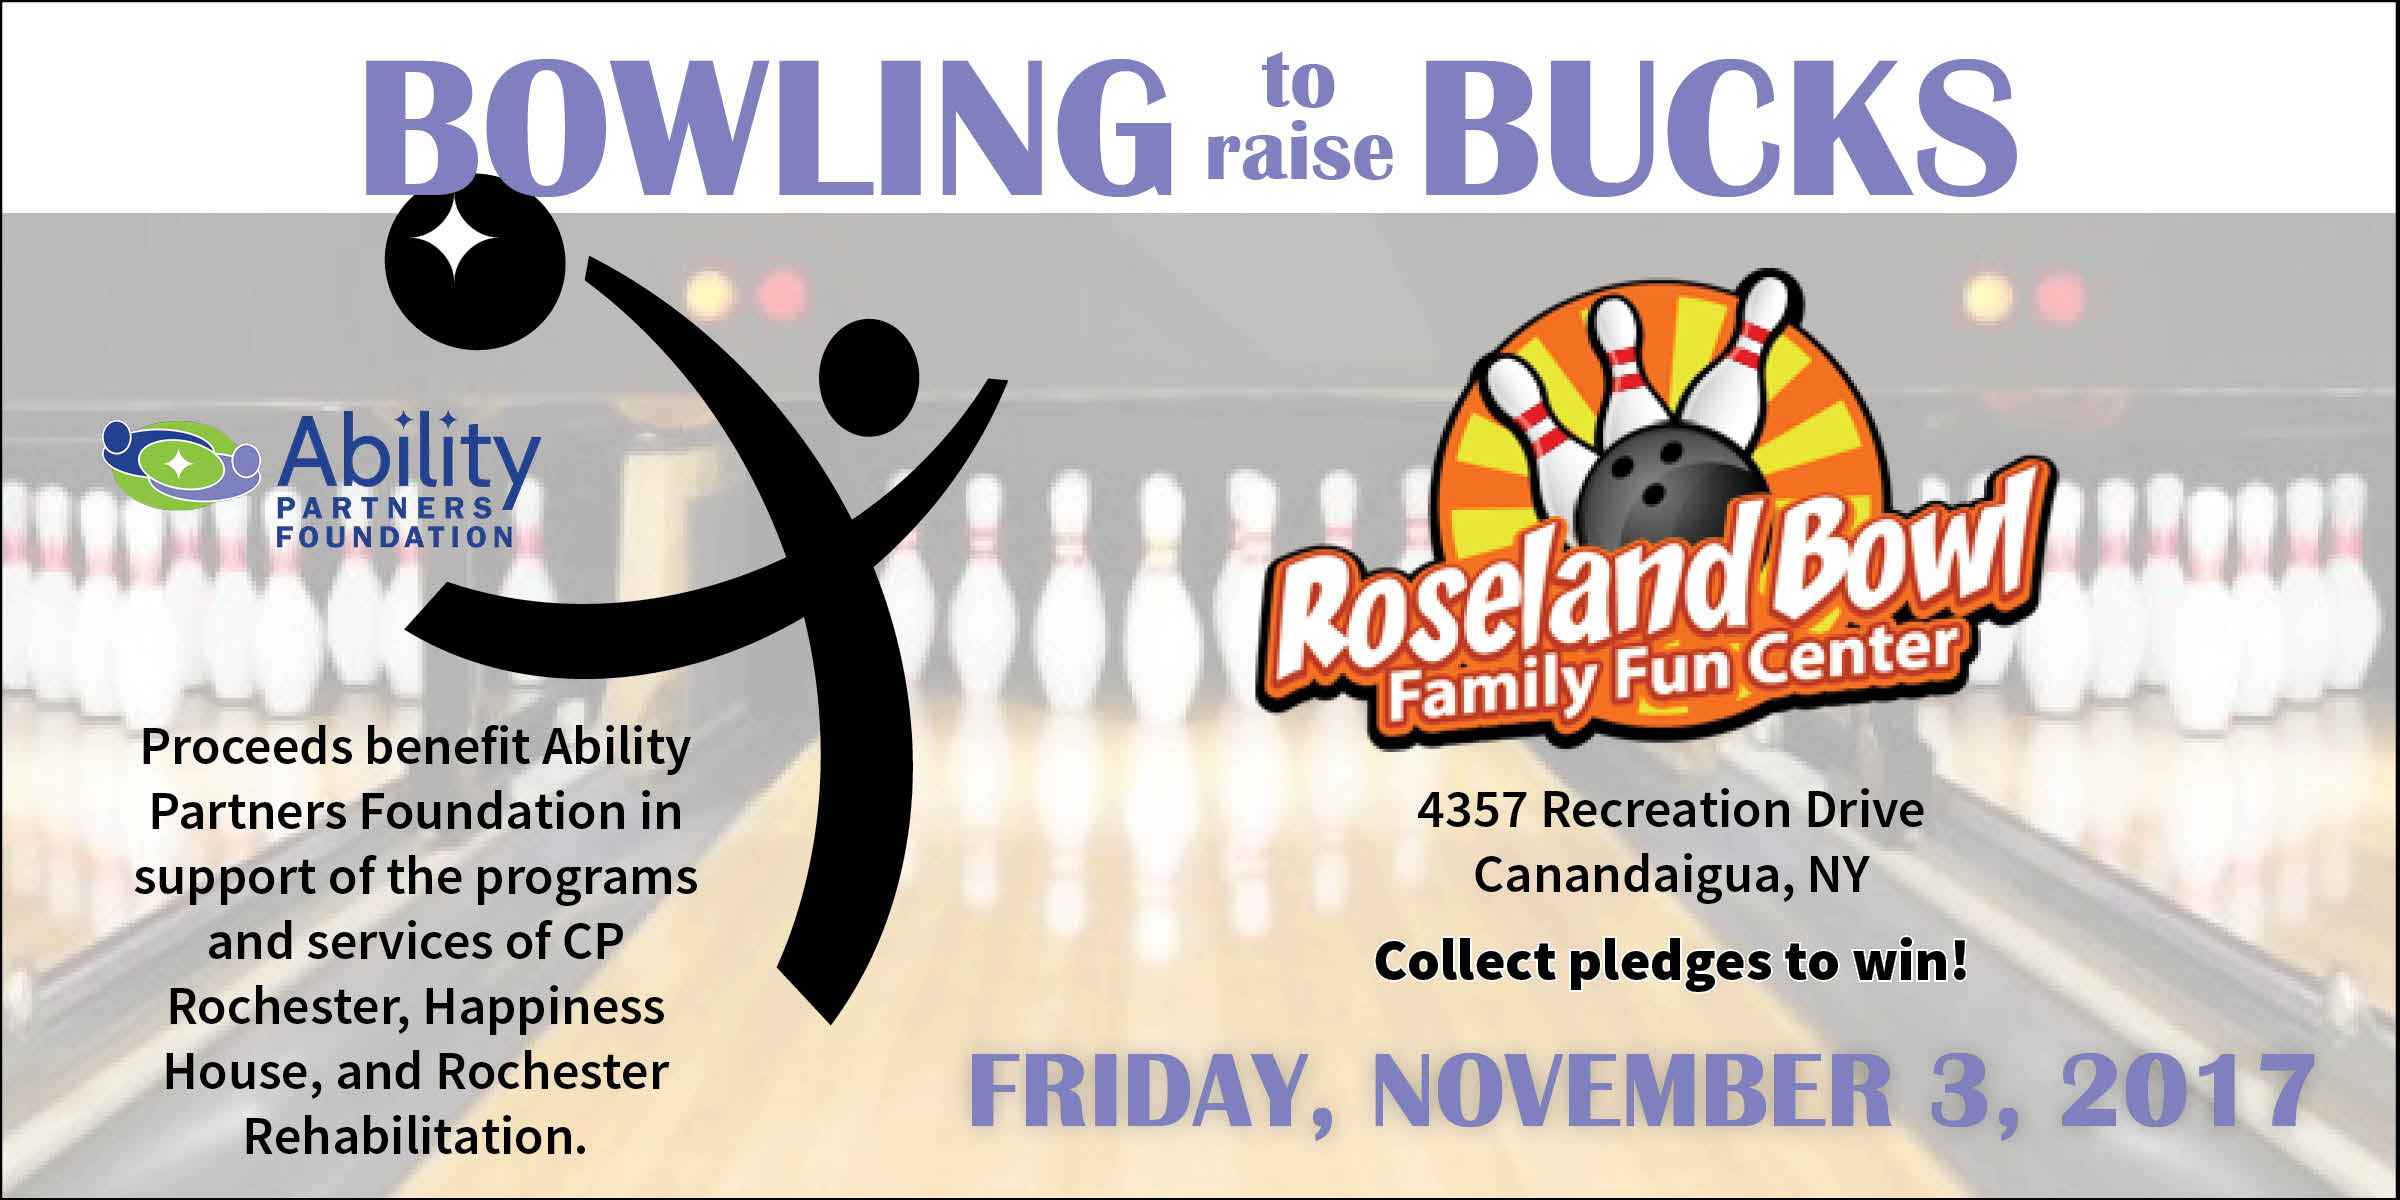 Bowling to Raise Bucks